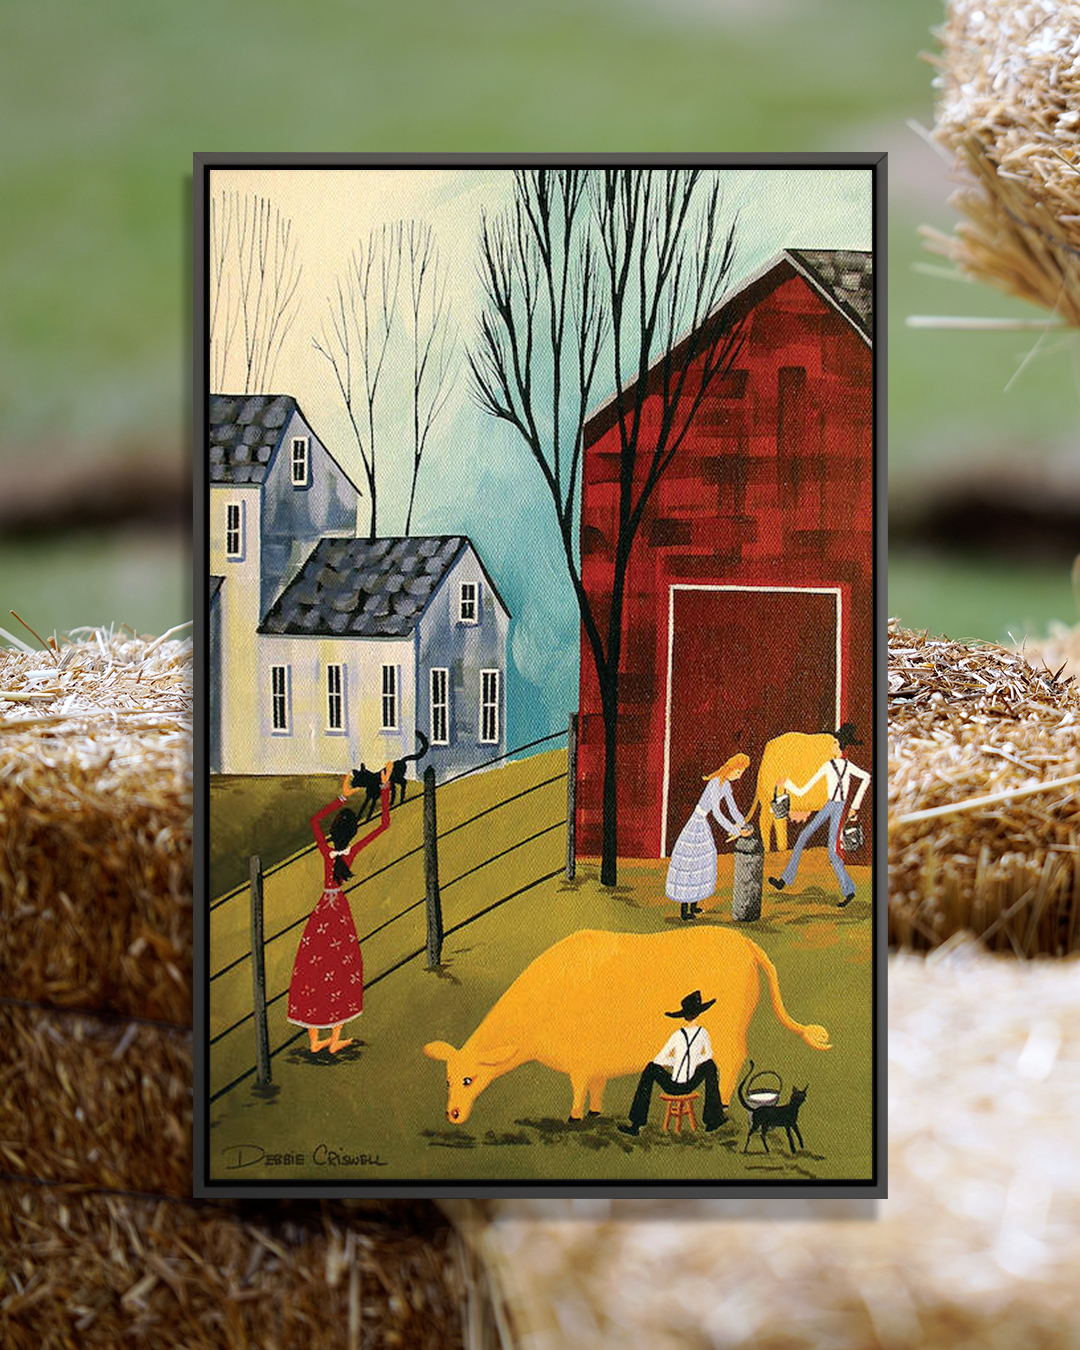 """""""Milking The Cows"""" by Debbie Criswell shows people milking two cows while a woman pets a black cat on the fence in the background."""